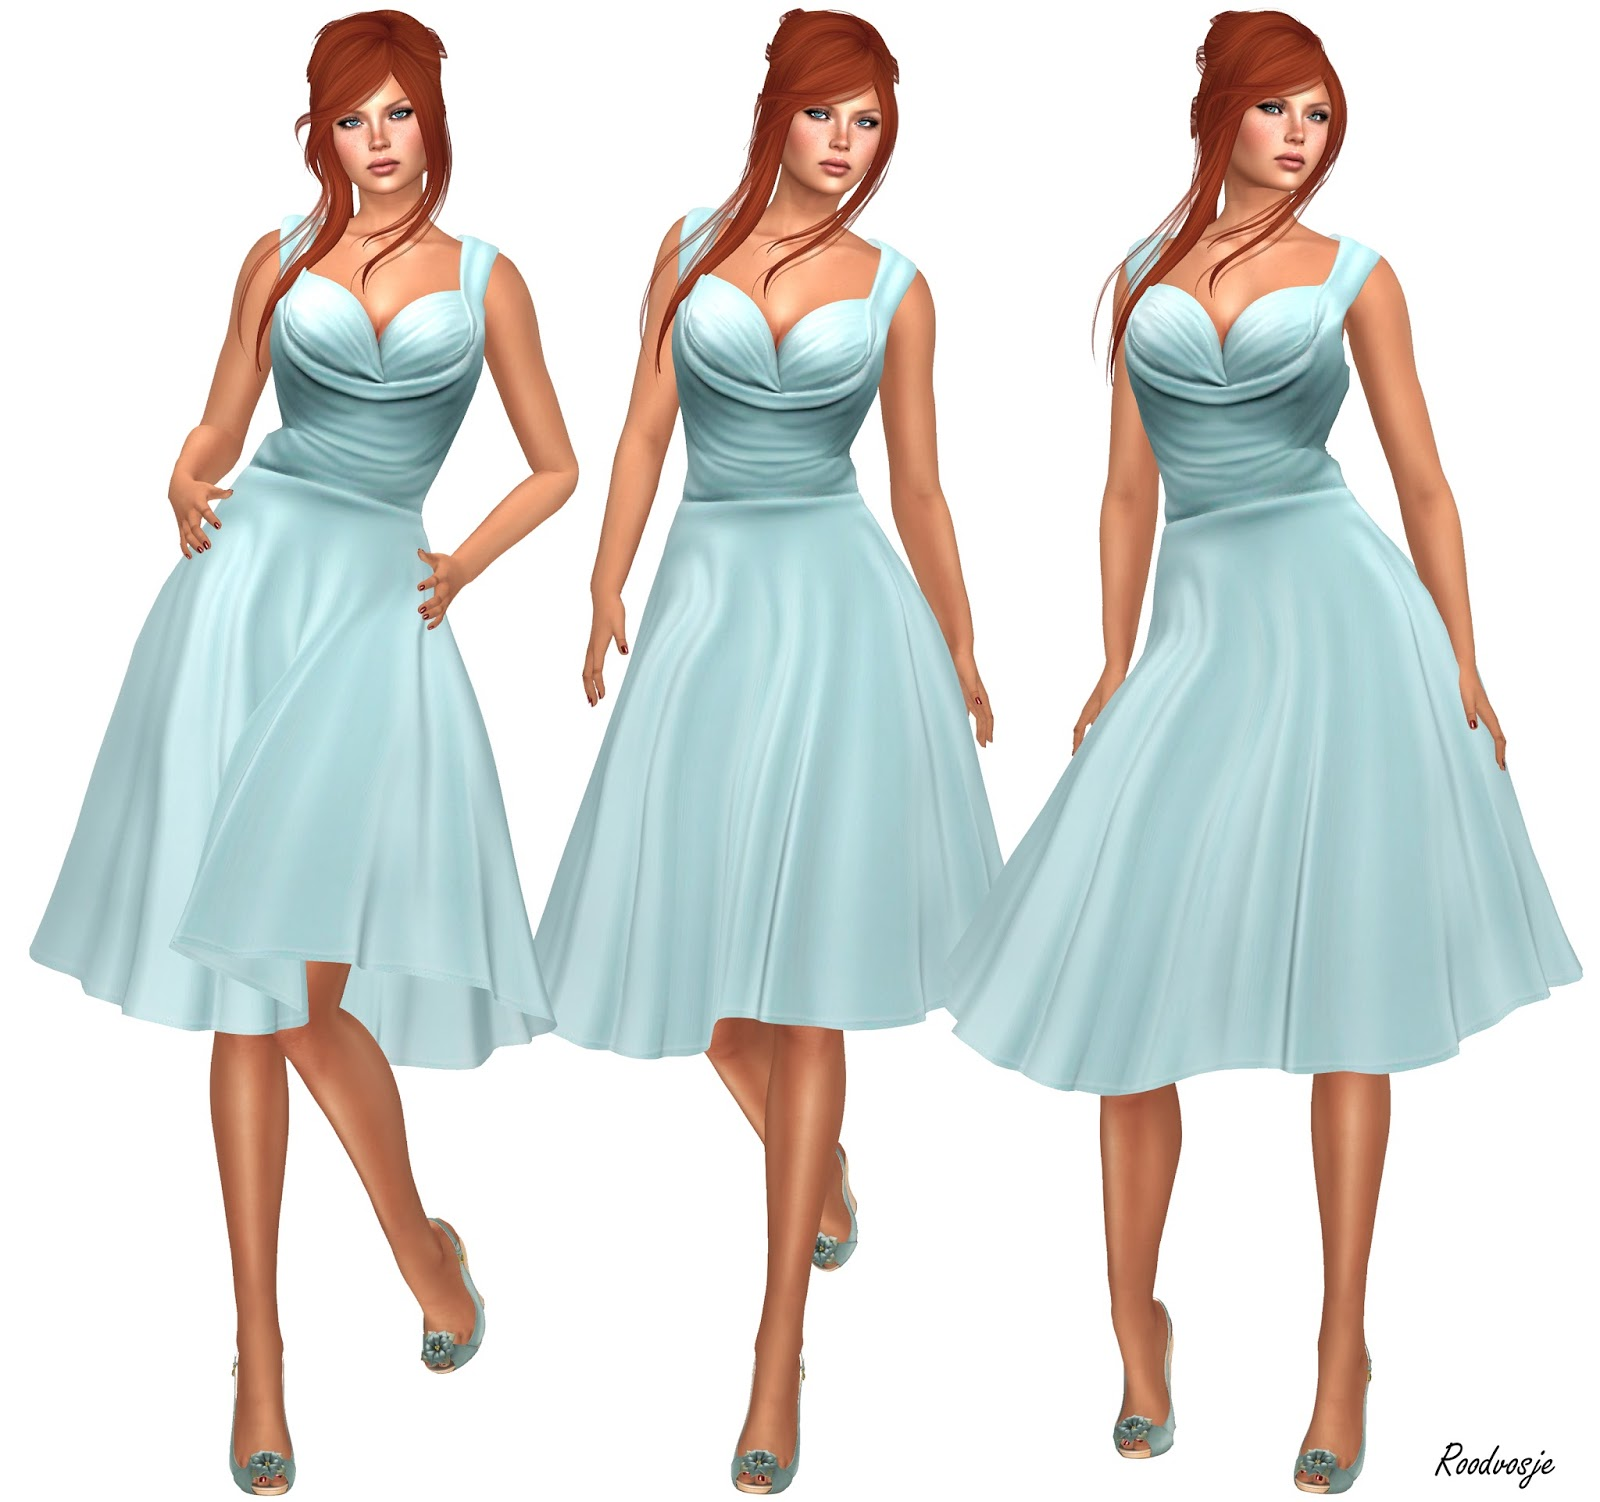 Fancy Party Dress Theme Image - All Wedding Dresses ...